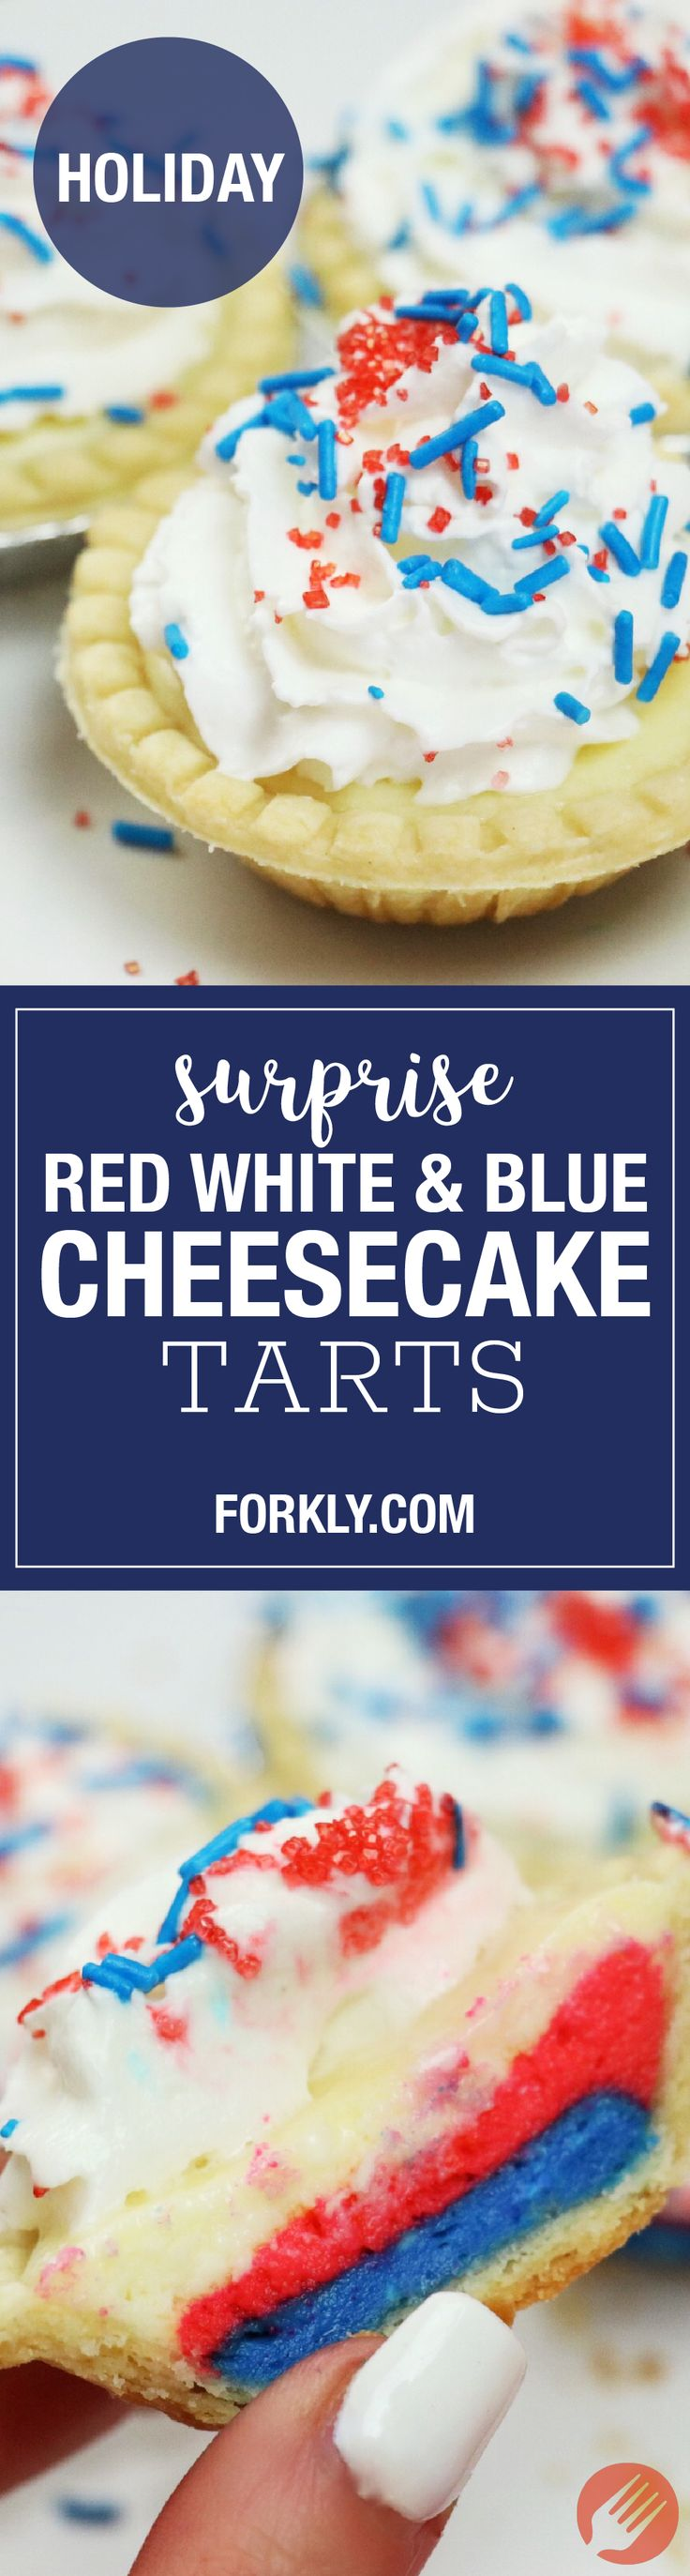 Surprise Red White Blue Cheesecake Tarts An Adorable 4th Of July Independence Day